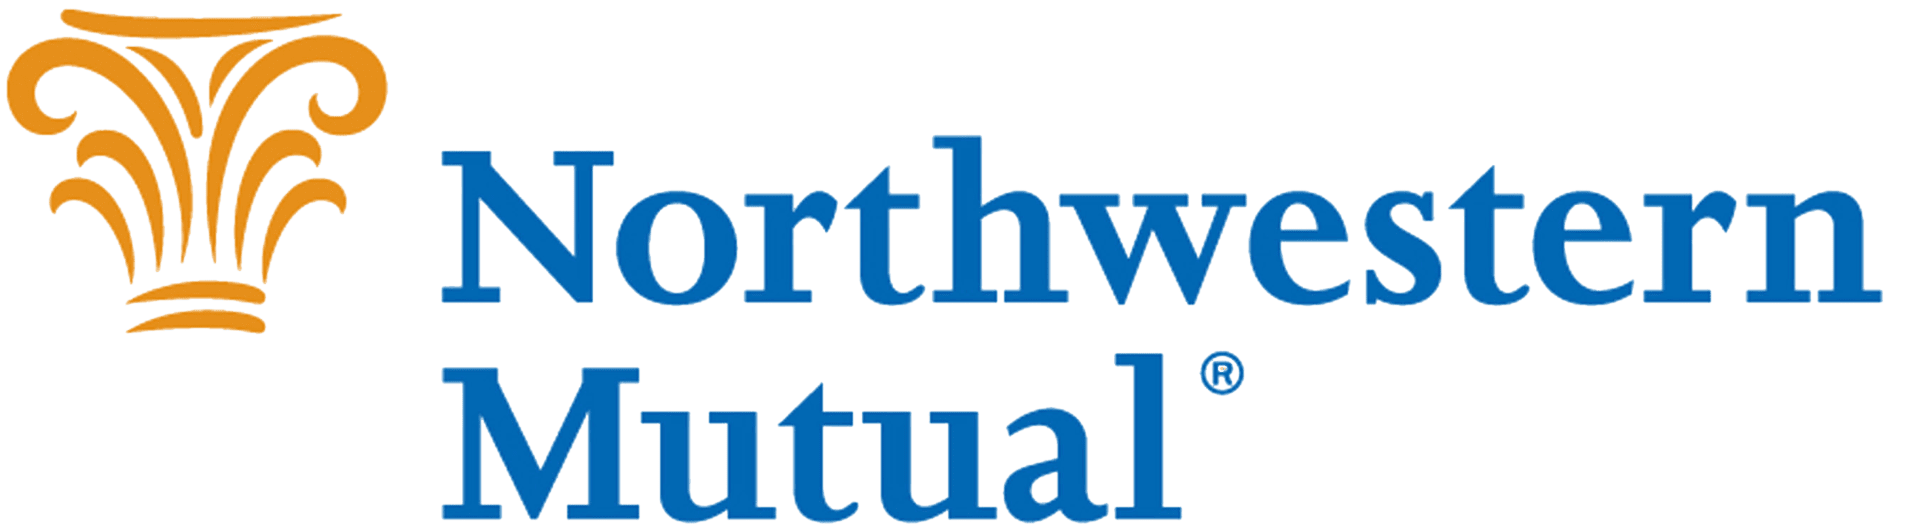 https://secureservercdn.net/50.62.198.97/ojo.737.myftpupload.com/wp-content/uploads/2019/04/Northwestern-Mutual-LOGO.png